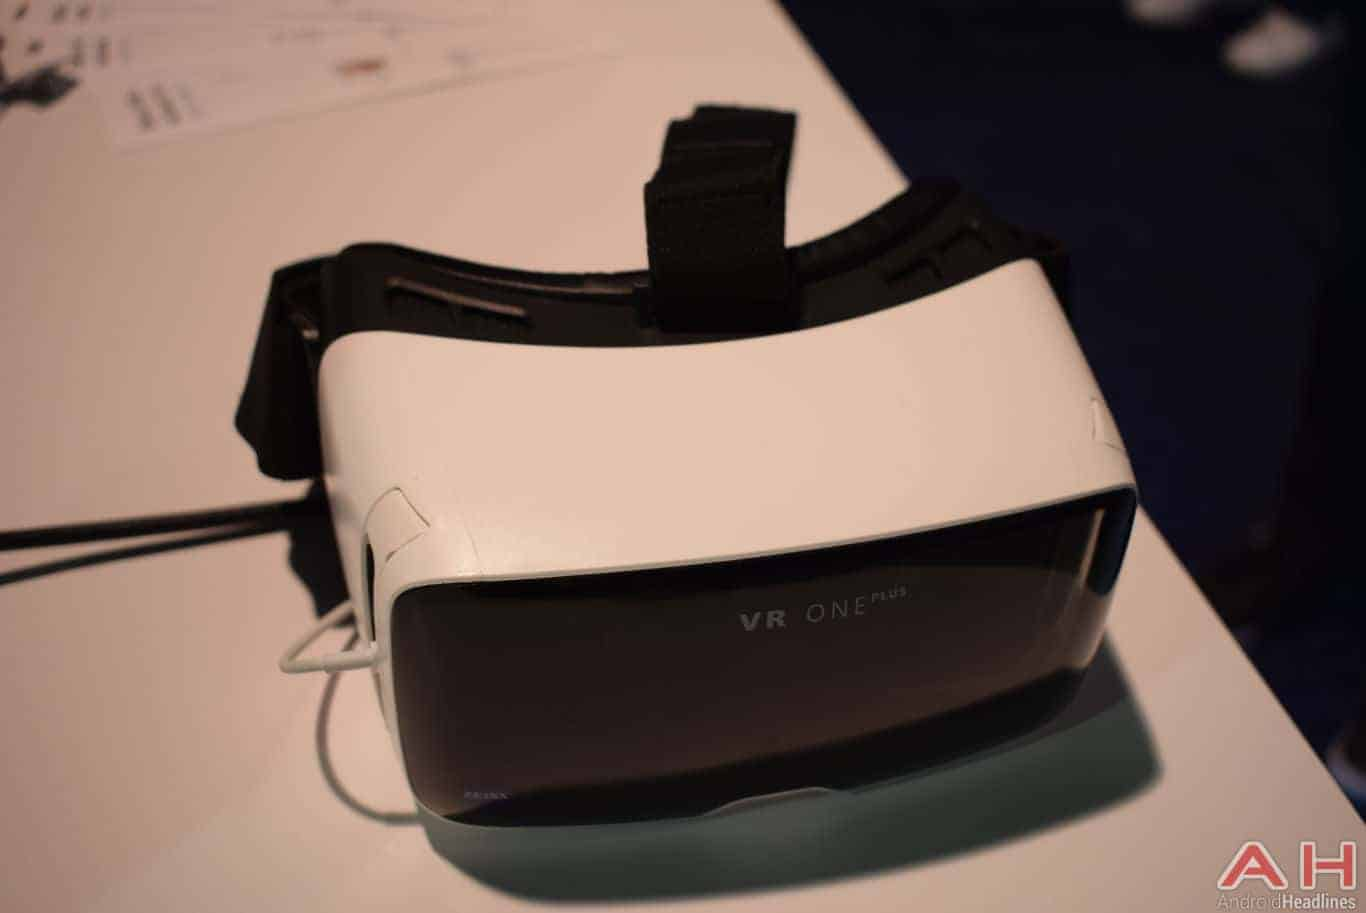 ZEISS VR ONE CONNECT CES 2018 AH 4